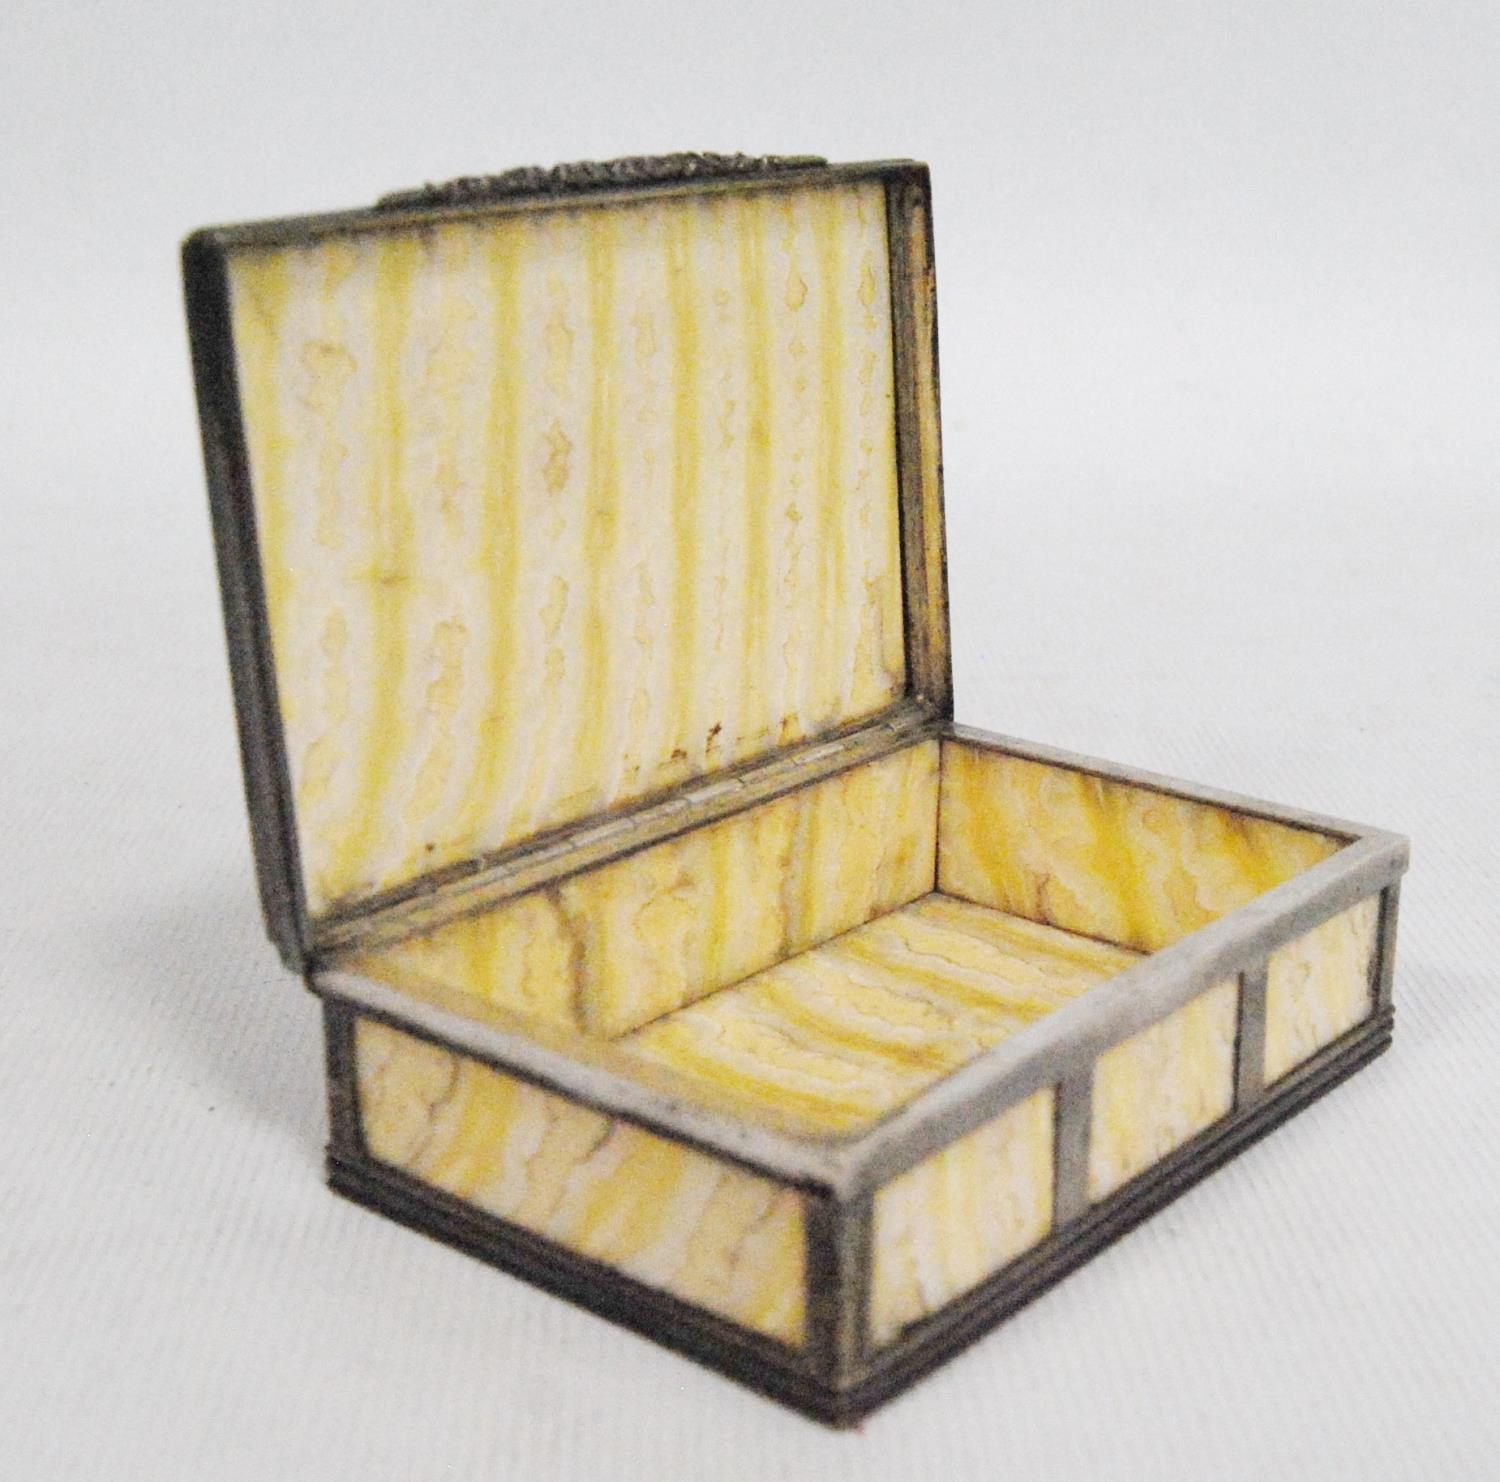 Elephant's tooth box with white metal banding and floral clasp, 7.5cm wide, 2cm high and 5.5cm deep. - Image 2 of 3